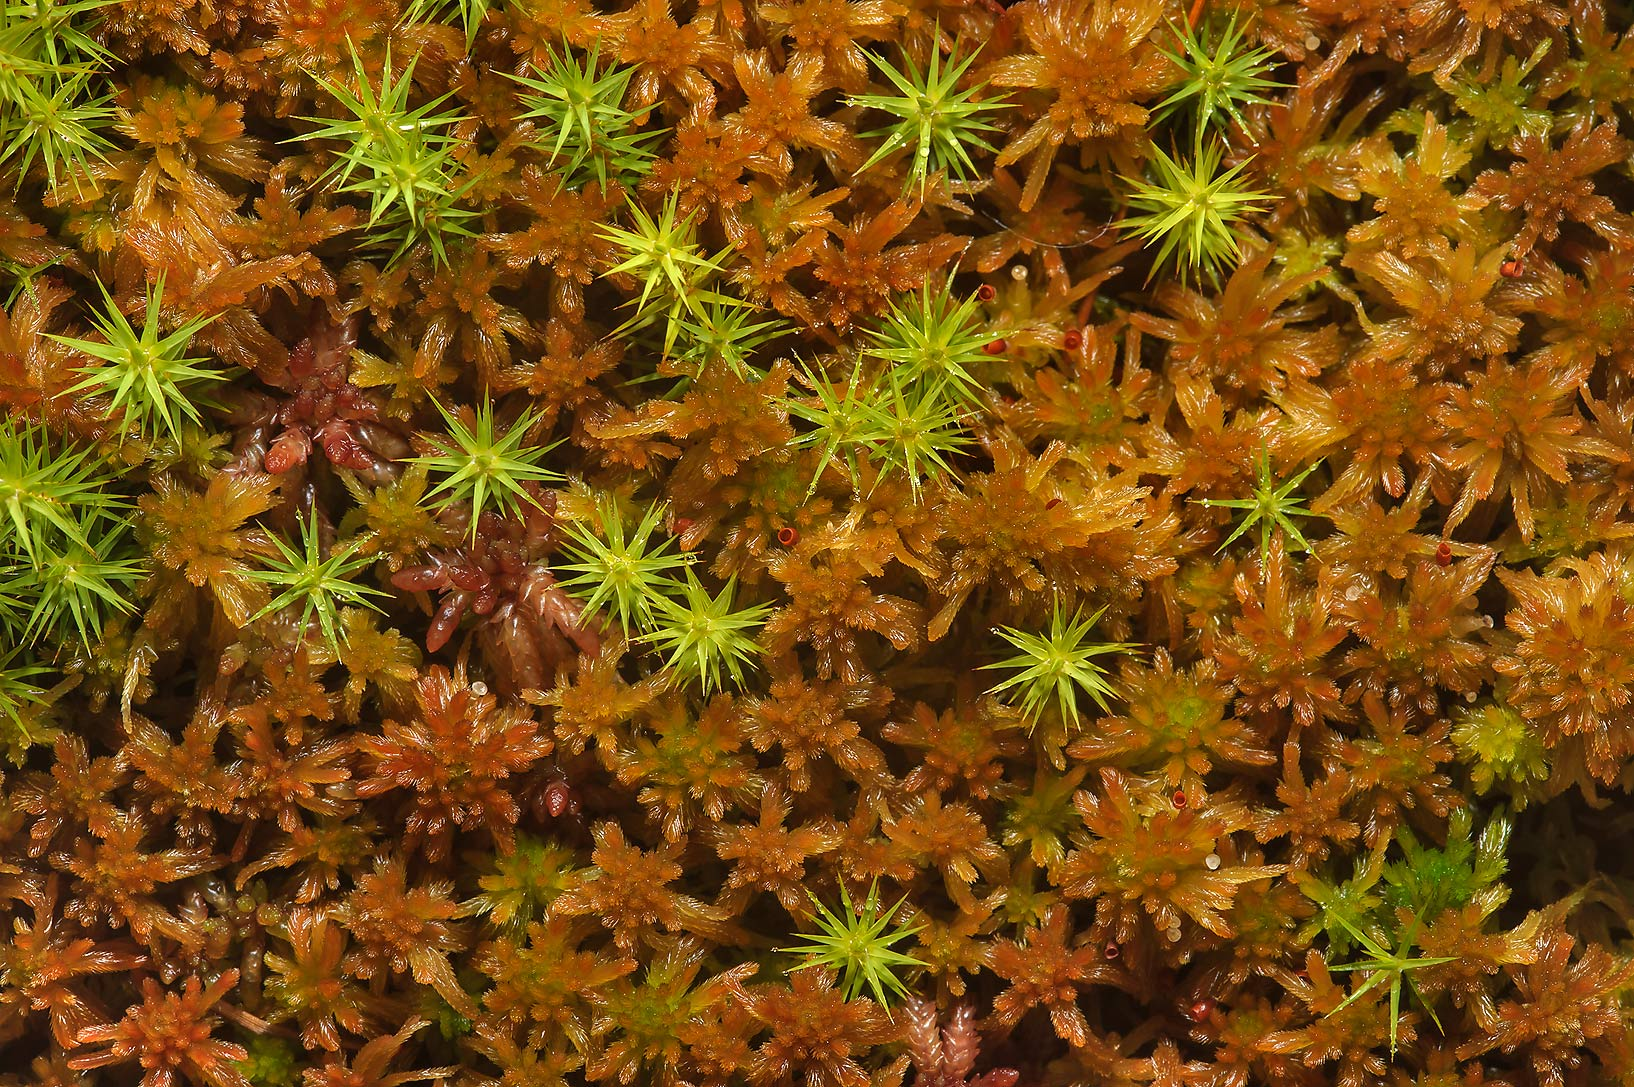 Mosses in Duplianskoe Marsh south from Sluditsy, Leningrad Region, Russia